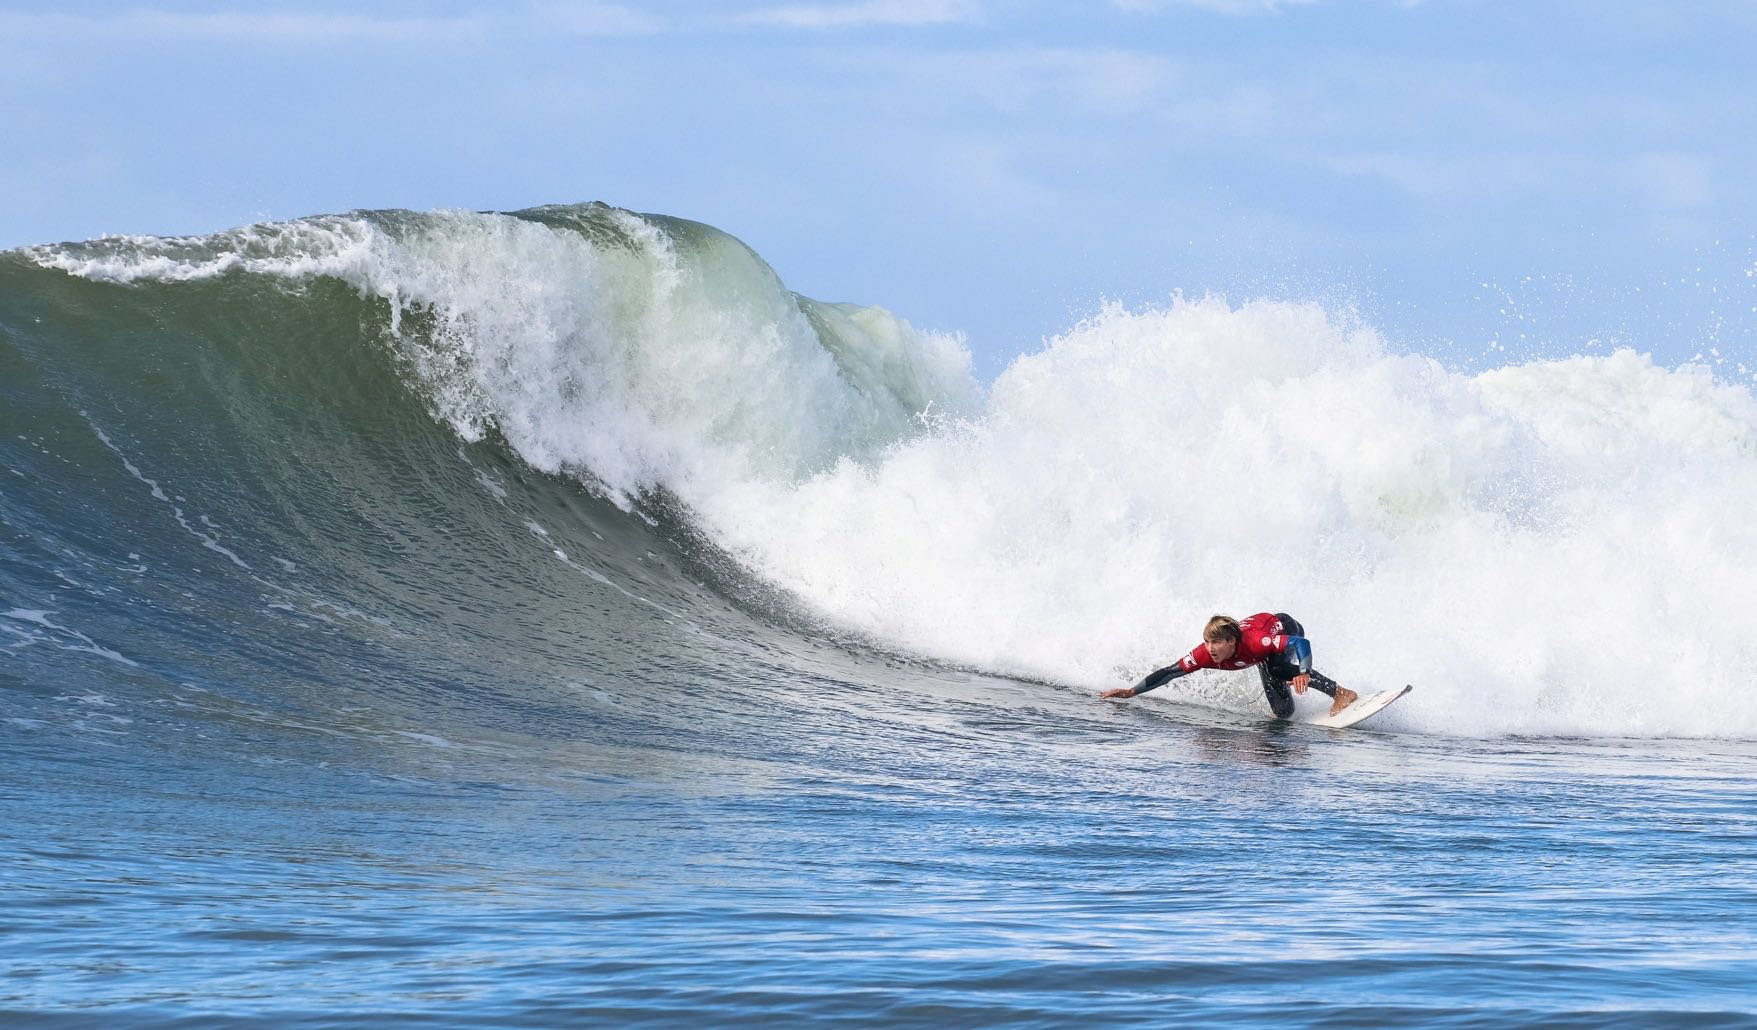 Matt McGillivray surfing in the Mitchum Buffalo City Surf Pro